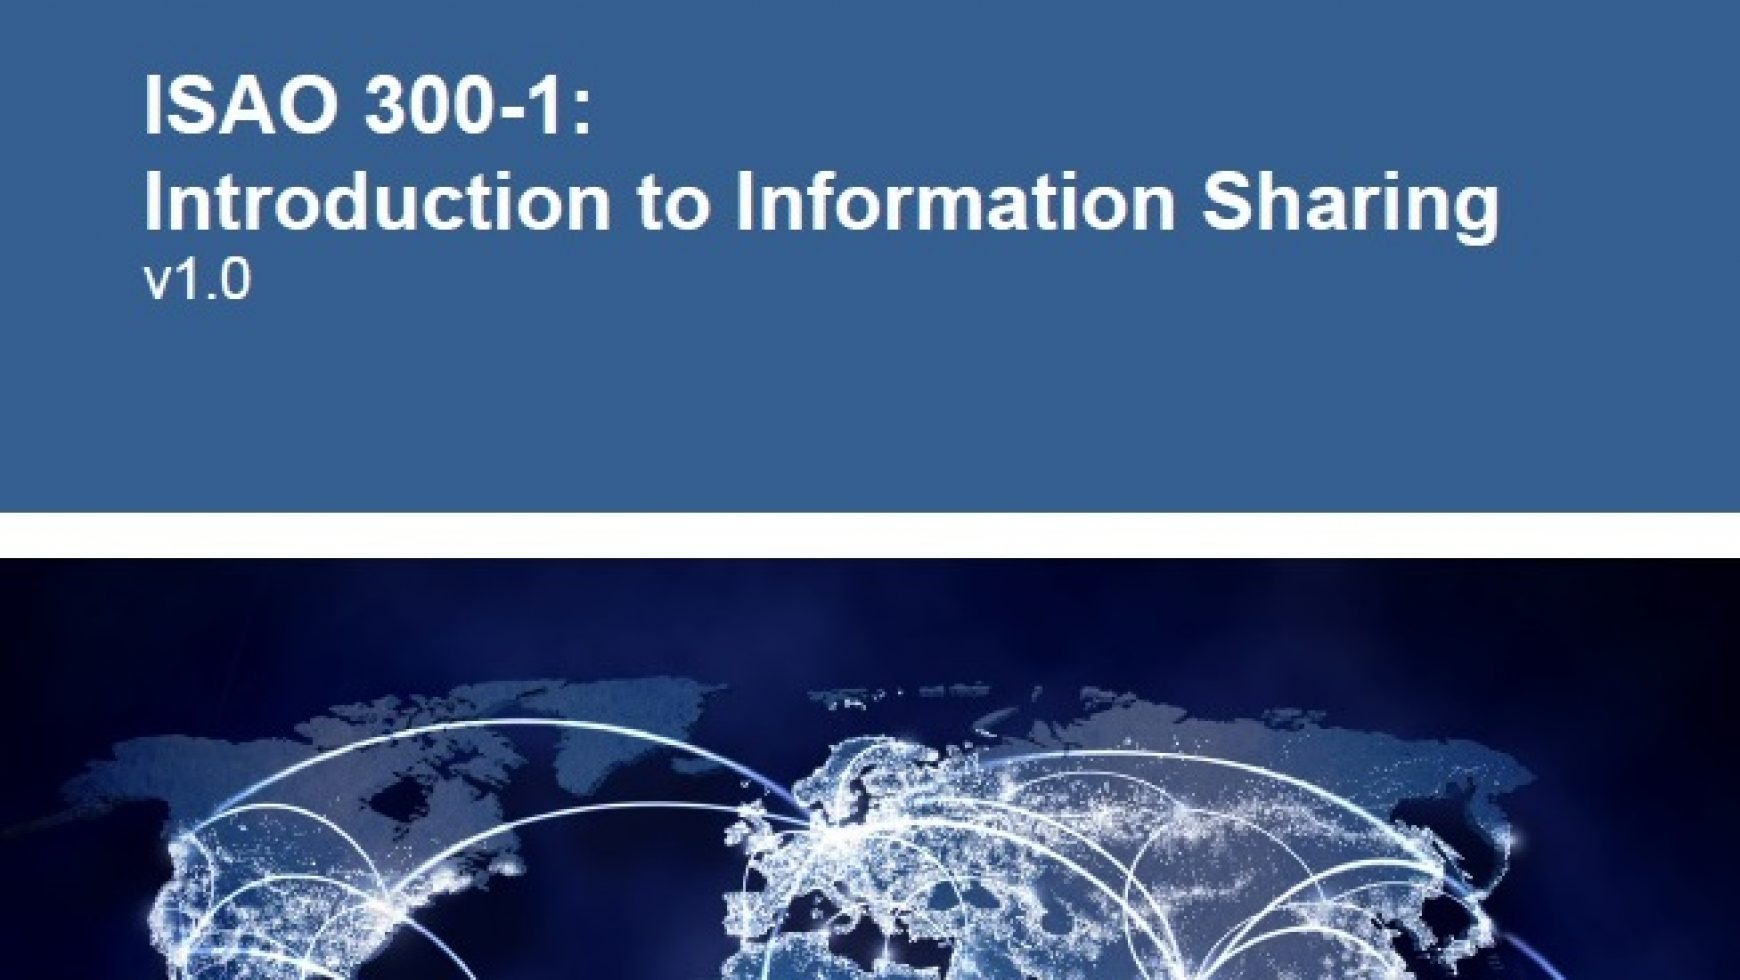 ISAO 300-1: Introduction to Information Sharing v1.0